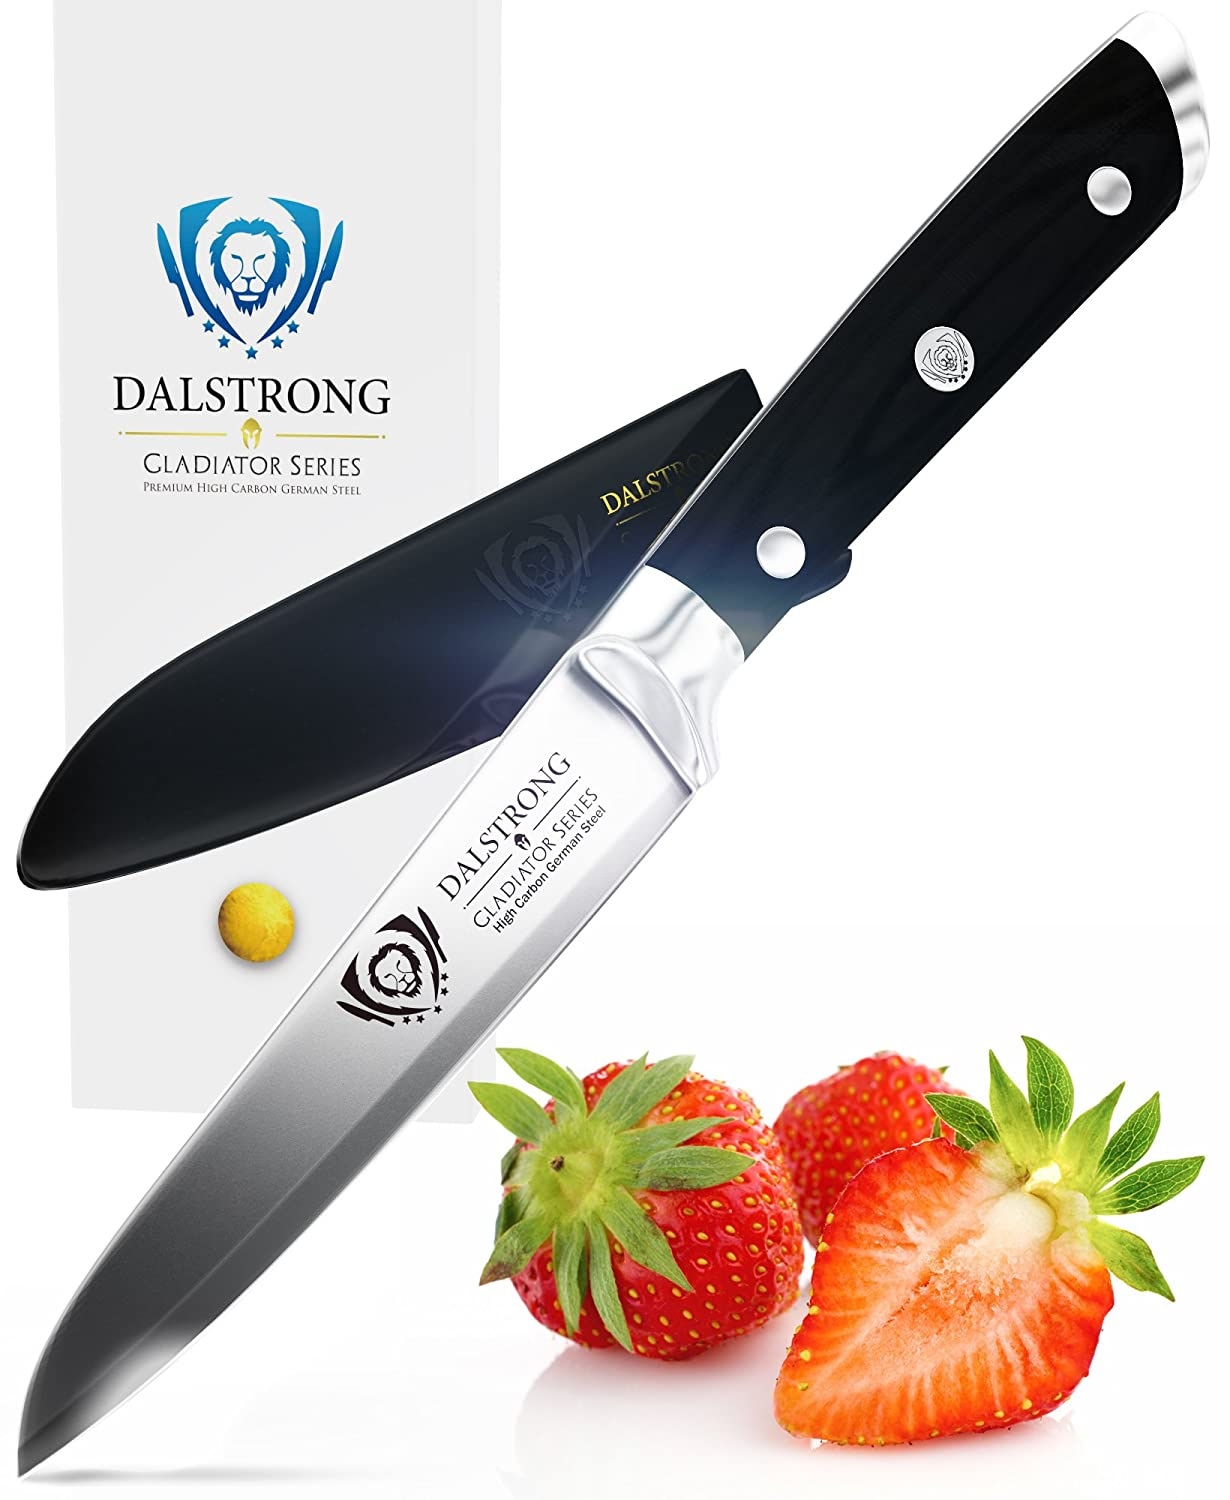 amazon com dalstrong paring knife gladiator series paring knife